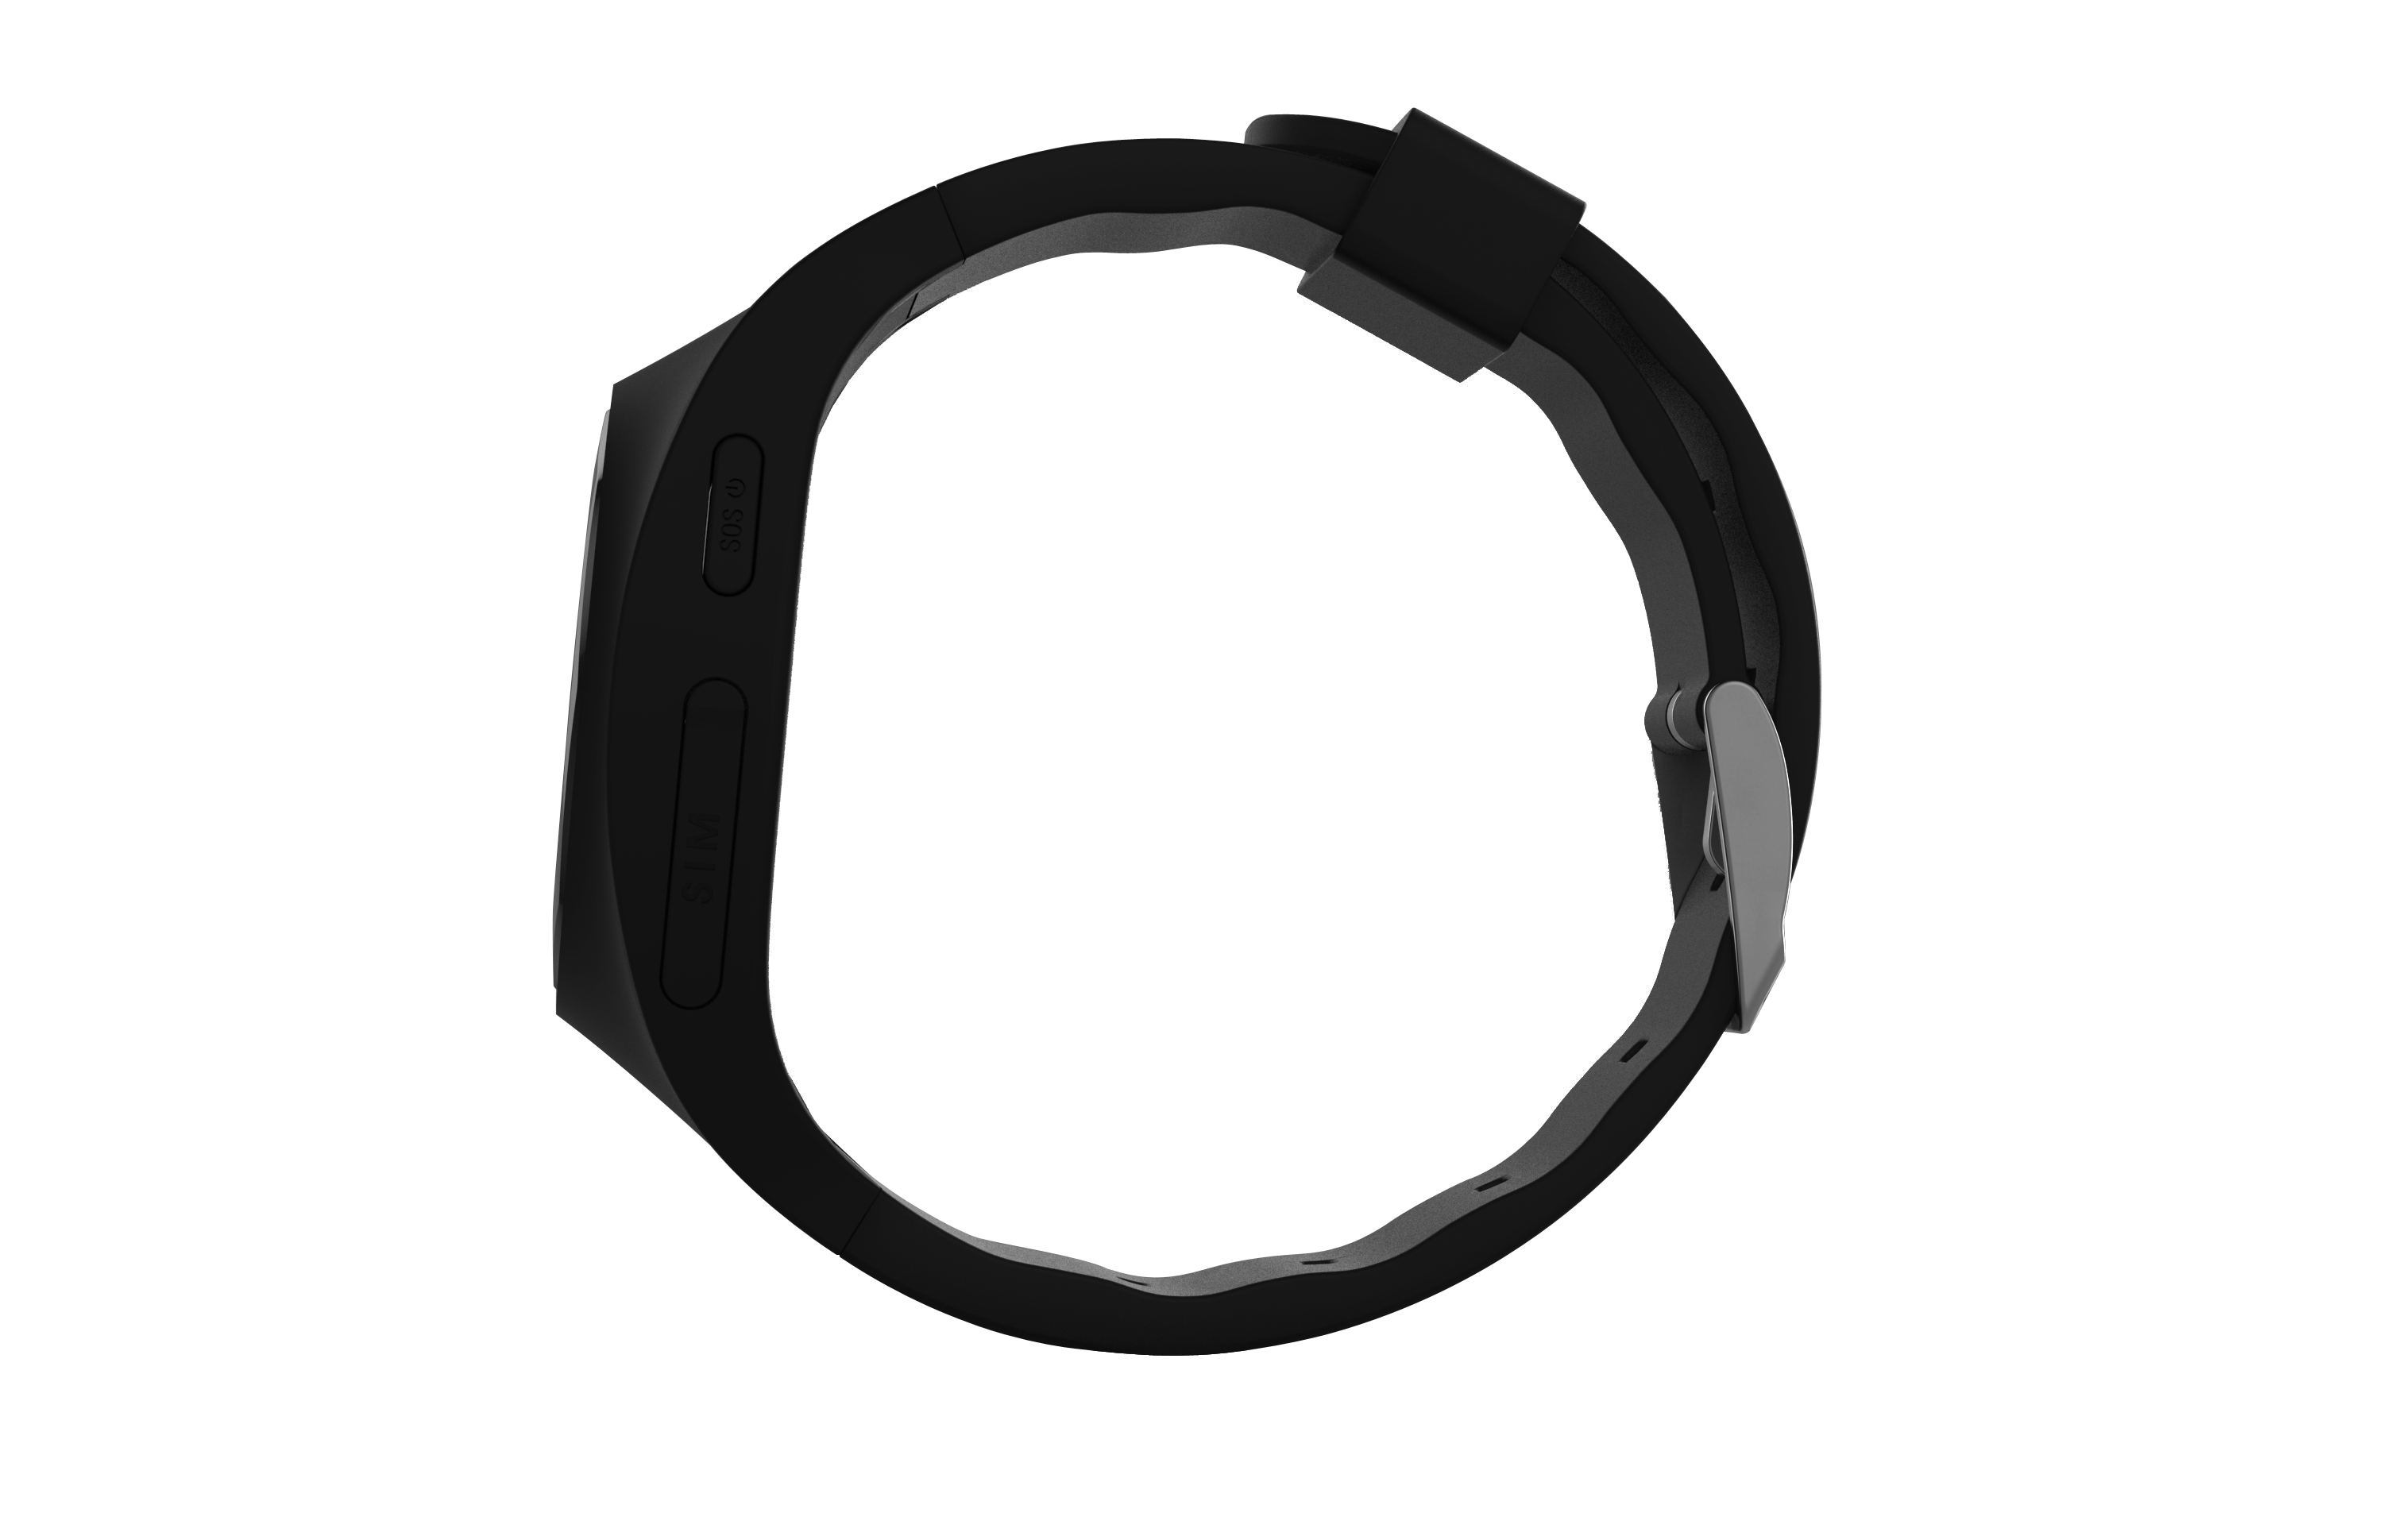 WiFi Locating GPS Bracelet for Children with Two Way Voice Calling